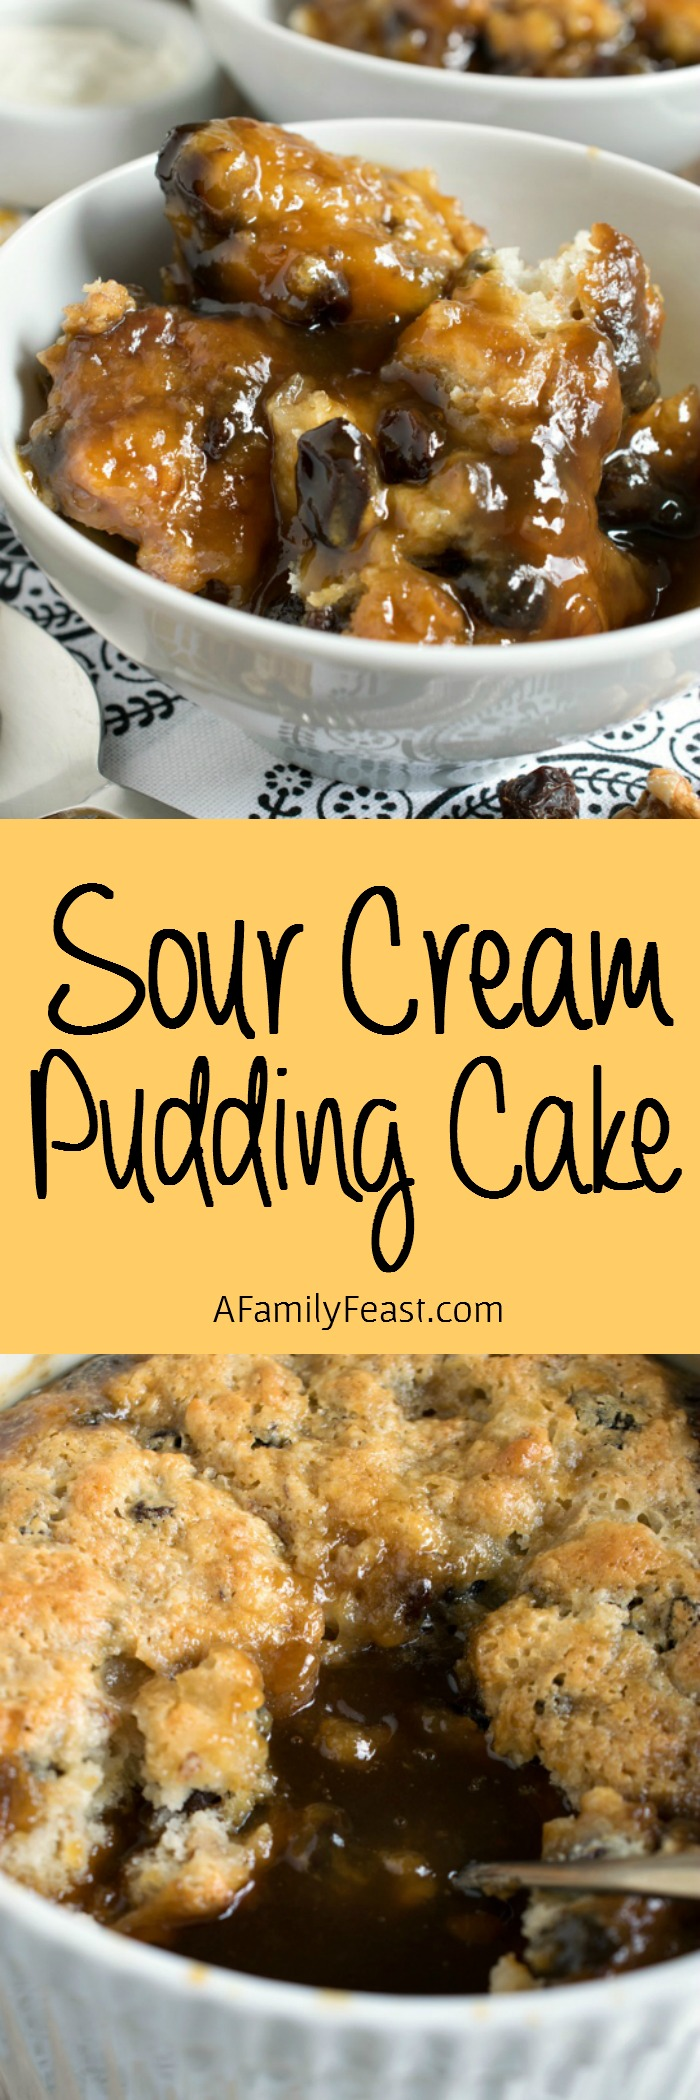 This Sour Cream Pudding Cake bakes up light and spongy on top with a rich, sweet, syrupy, caramel, raisin and walnut sauce on the bottom. It's heavenly!